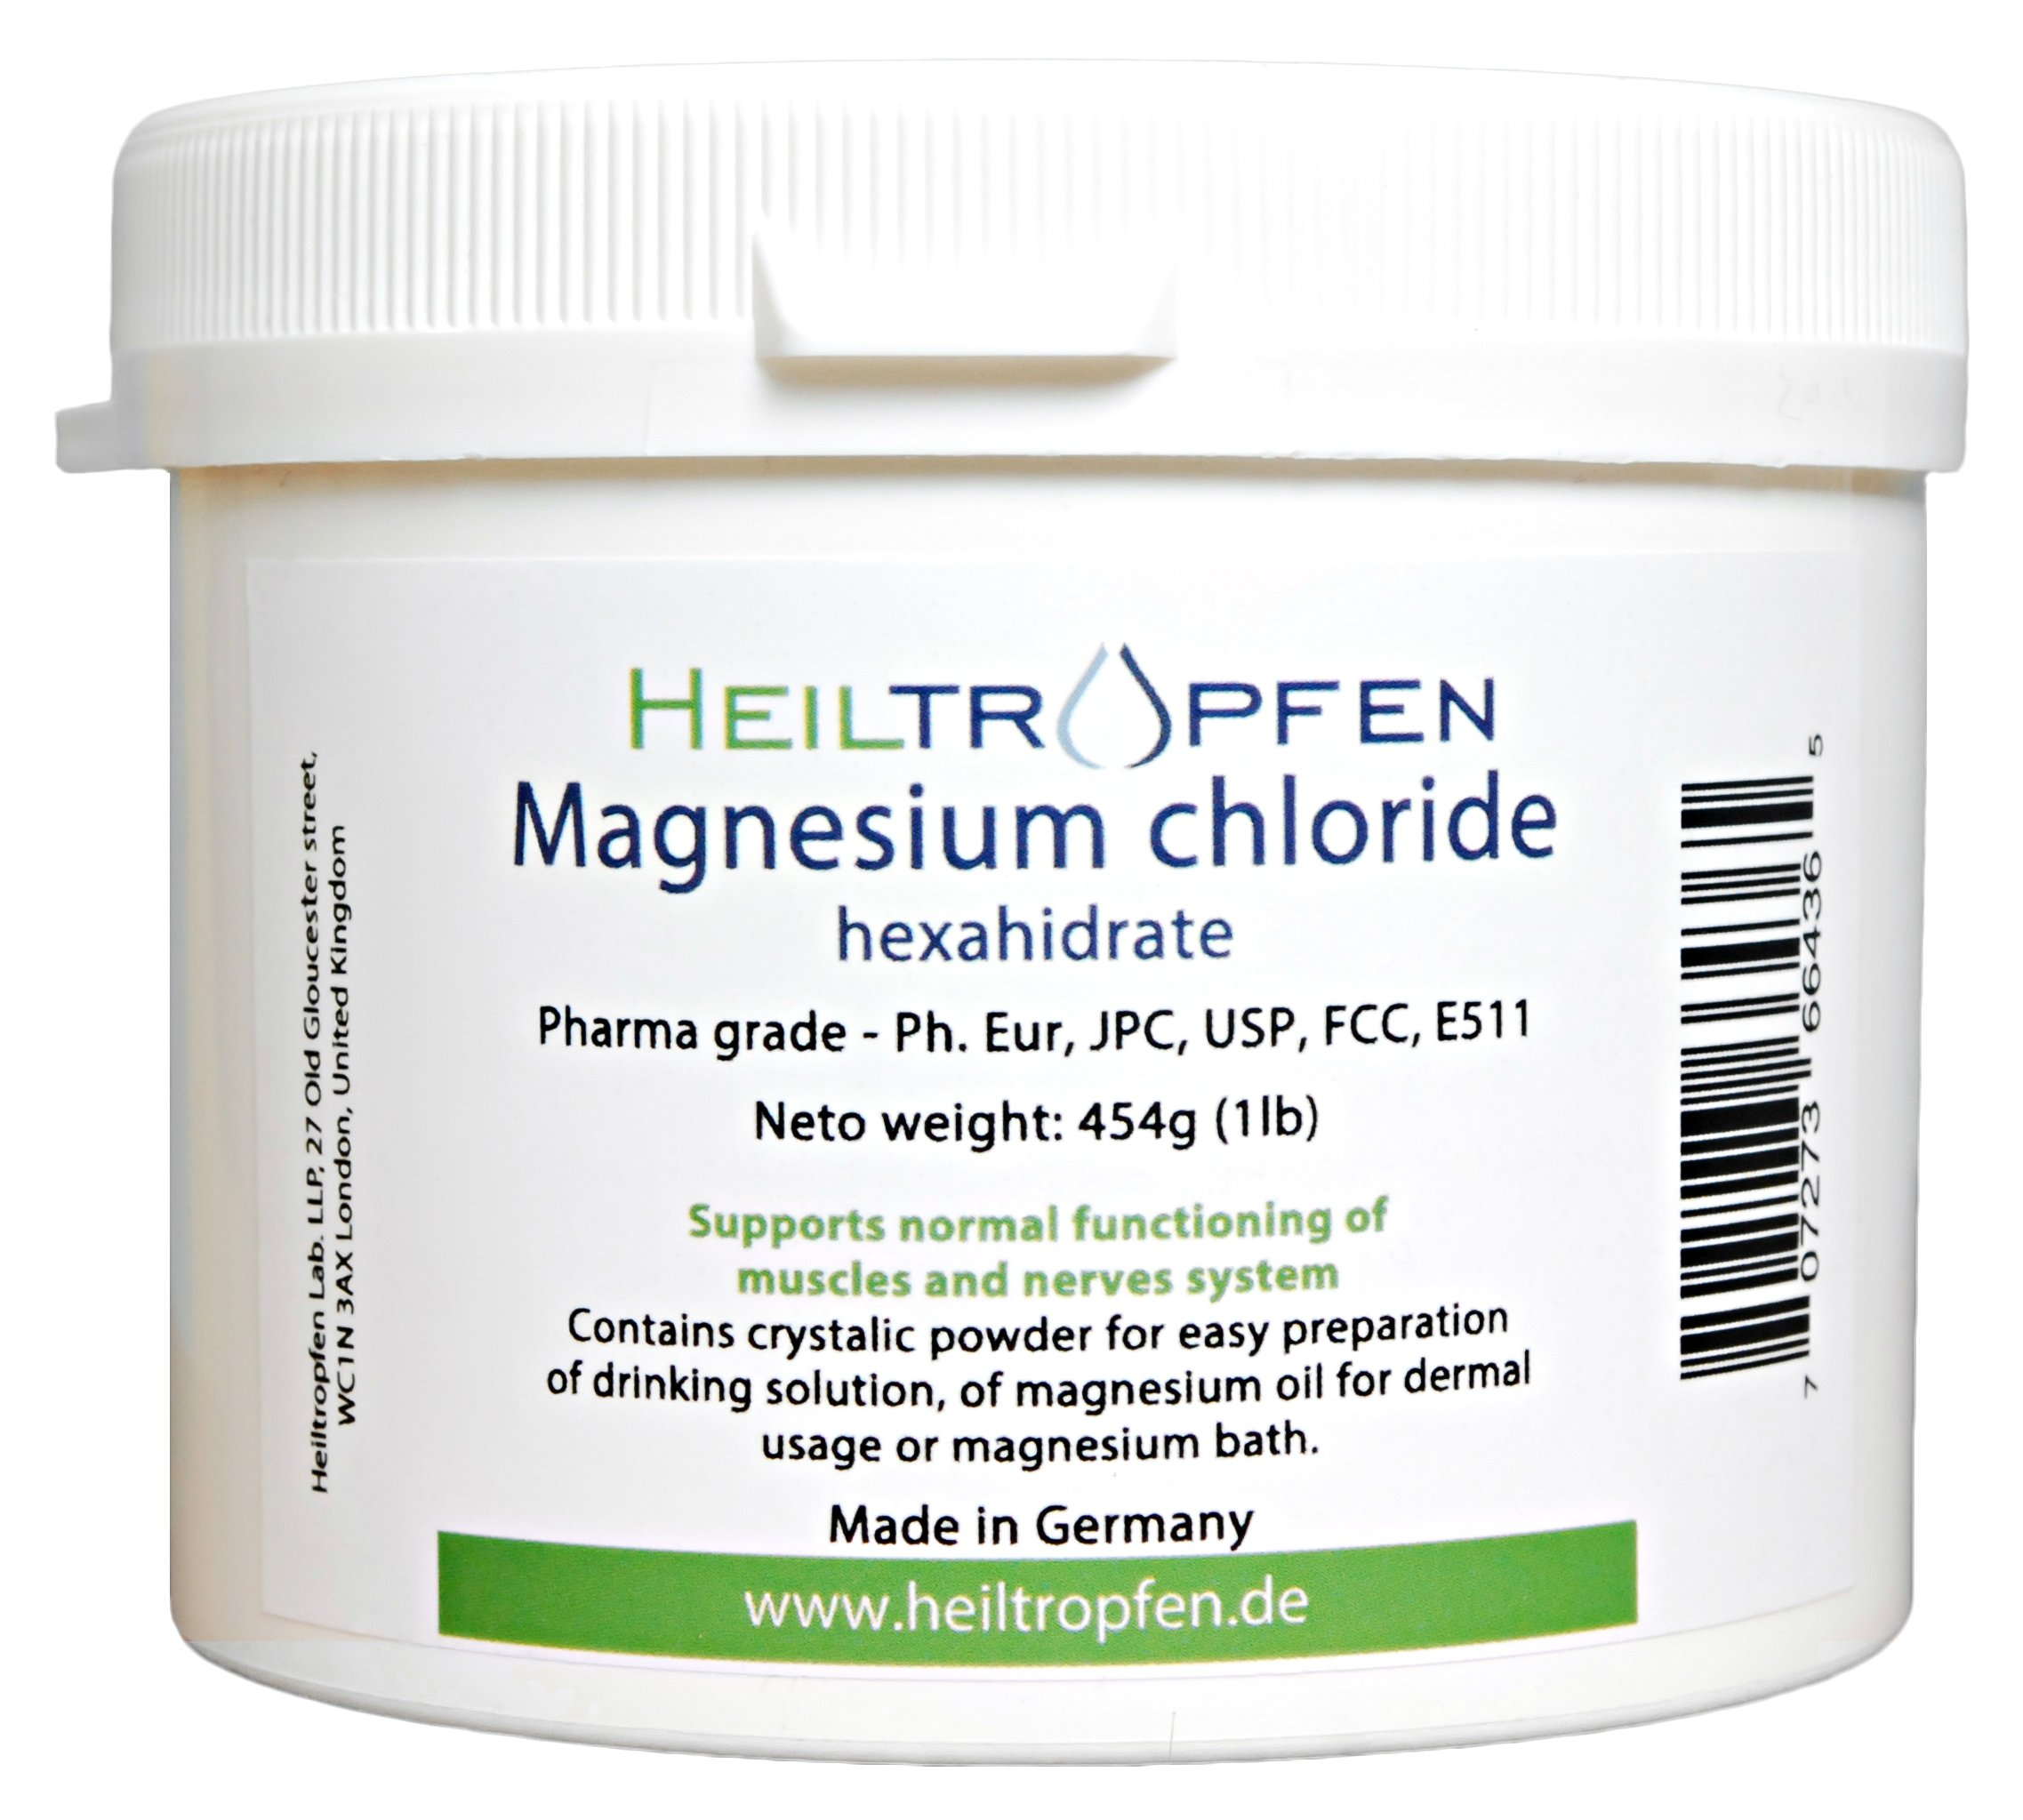 1 Pound Magnesium Chloride, Hexahydrate, Pharmaceutical Grade, Crystal Powder, Pure Ph.